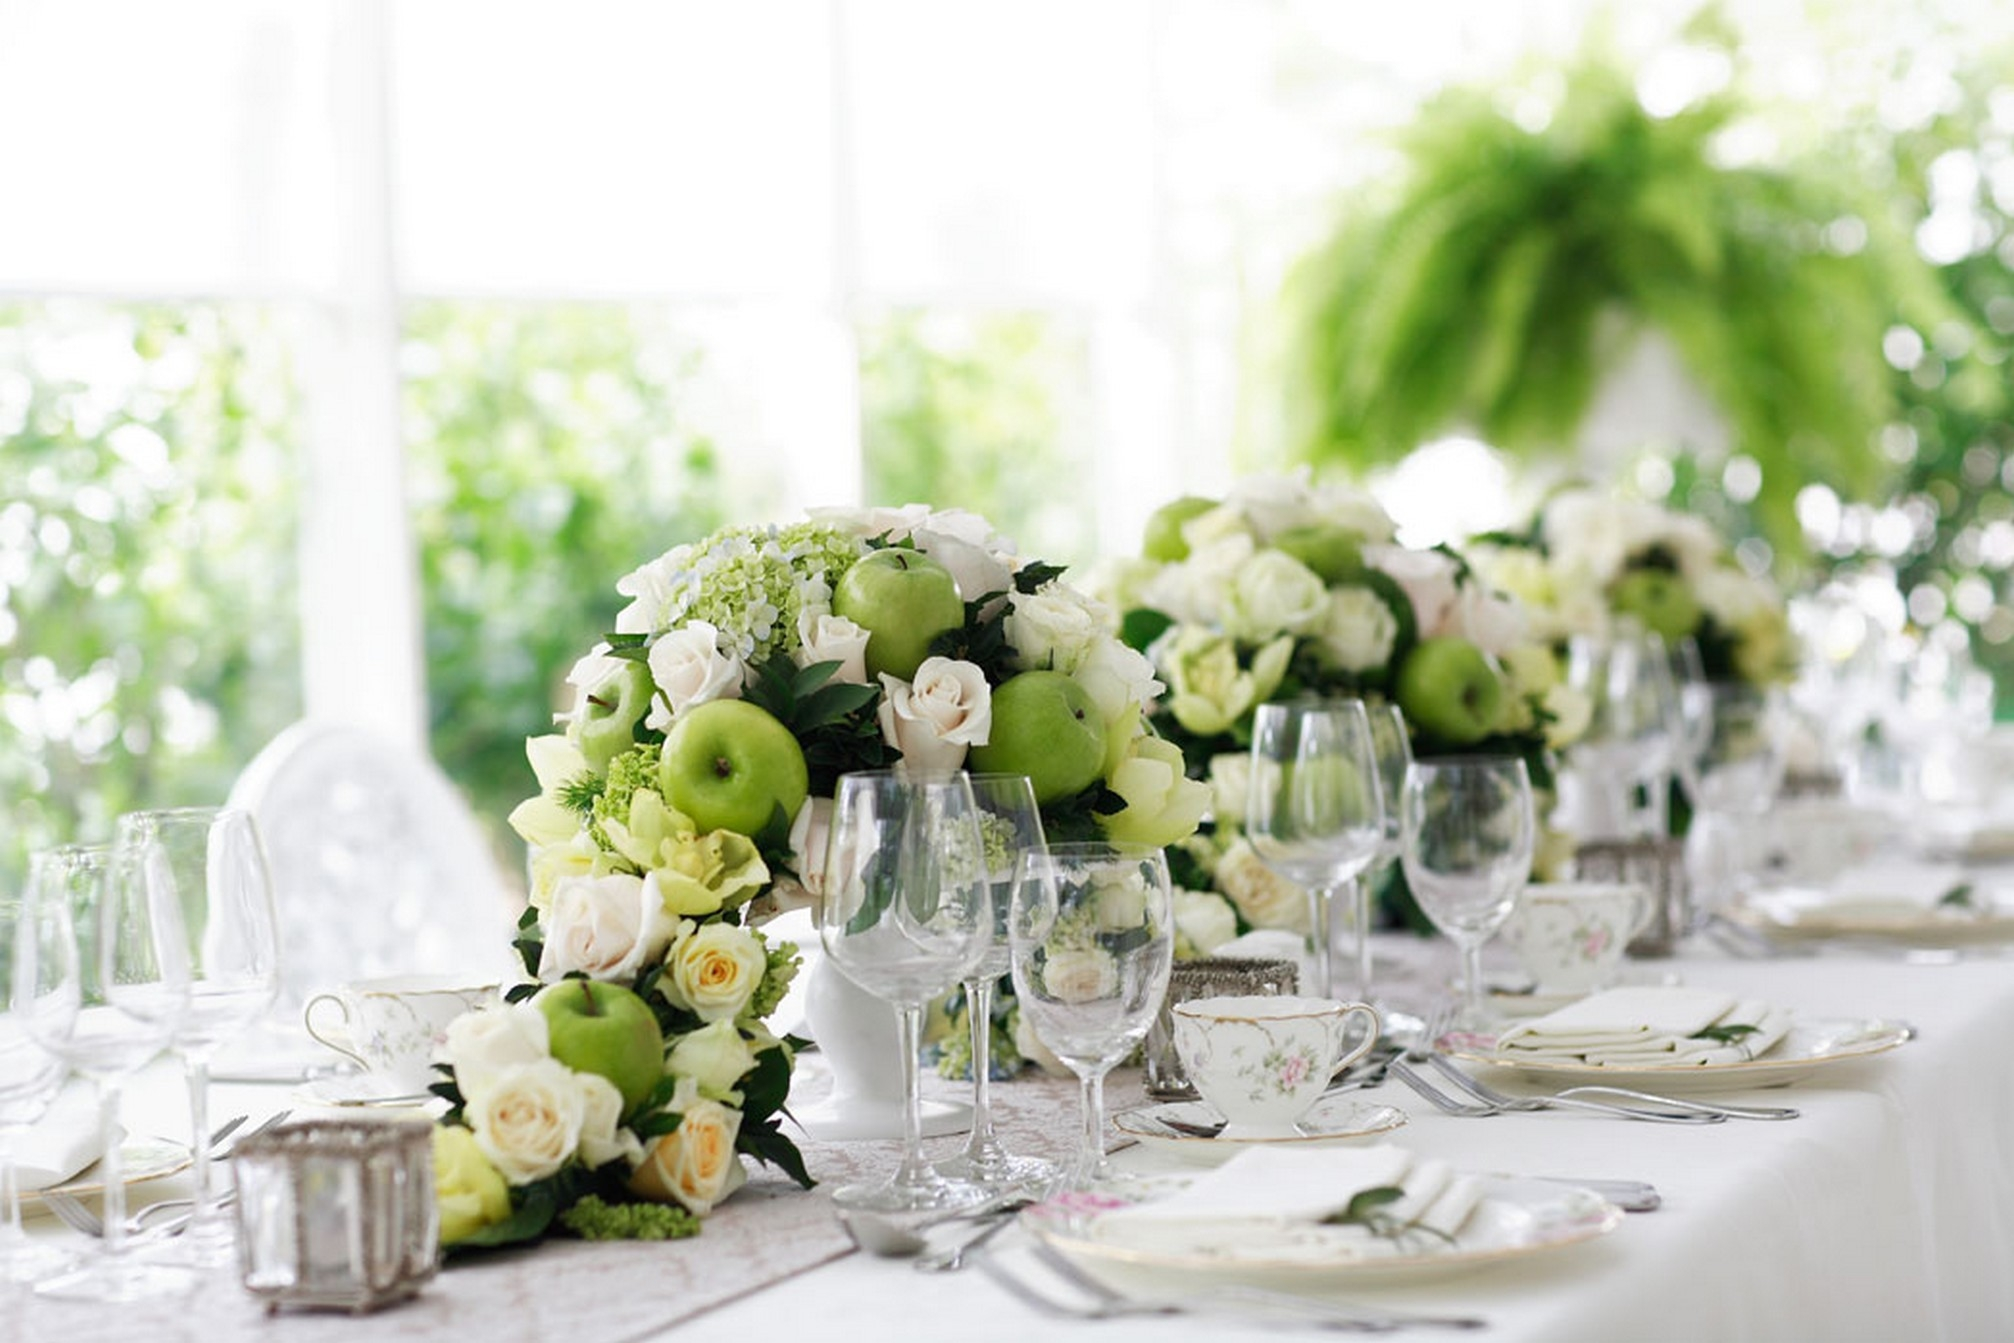 Significance Of Flowers In Indian Wedding Traditions